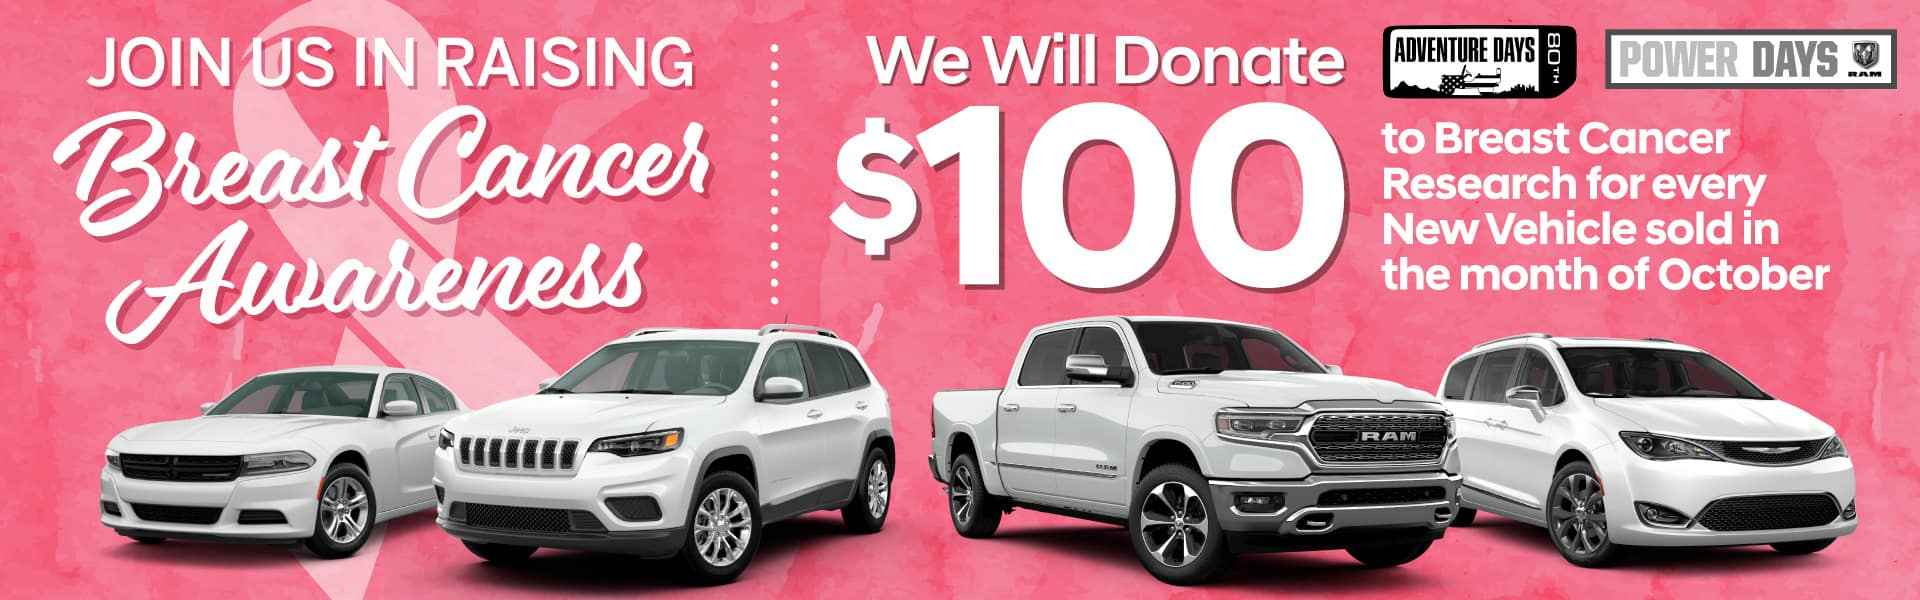 Join Us In Raising Breast Cancer Awareness | We Will Donate $100 for every car sold in October